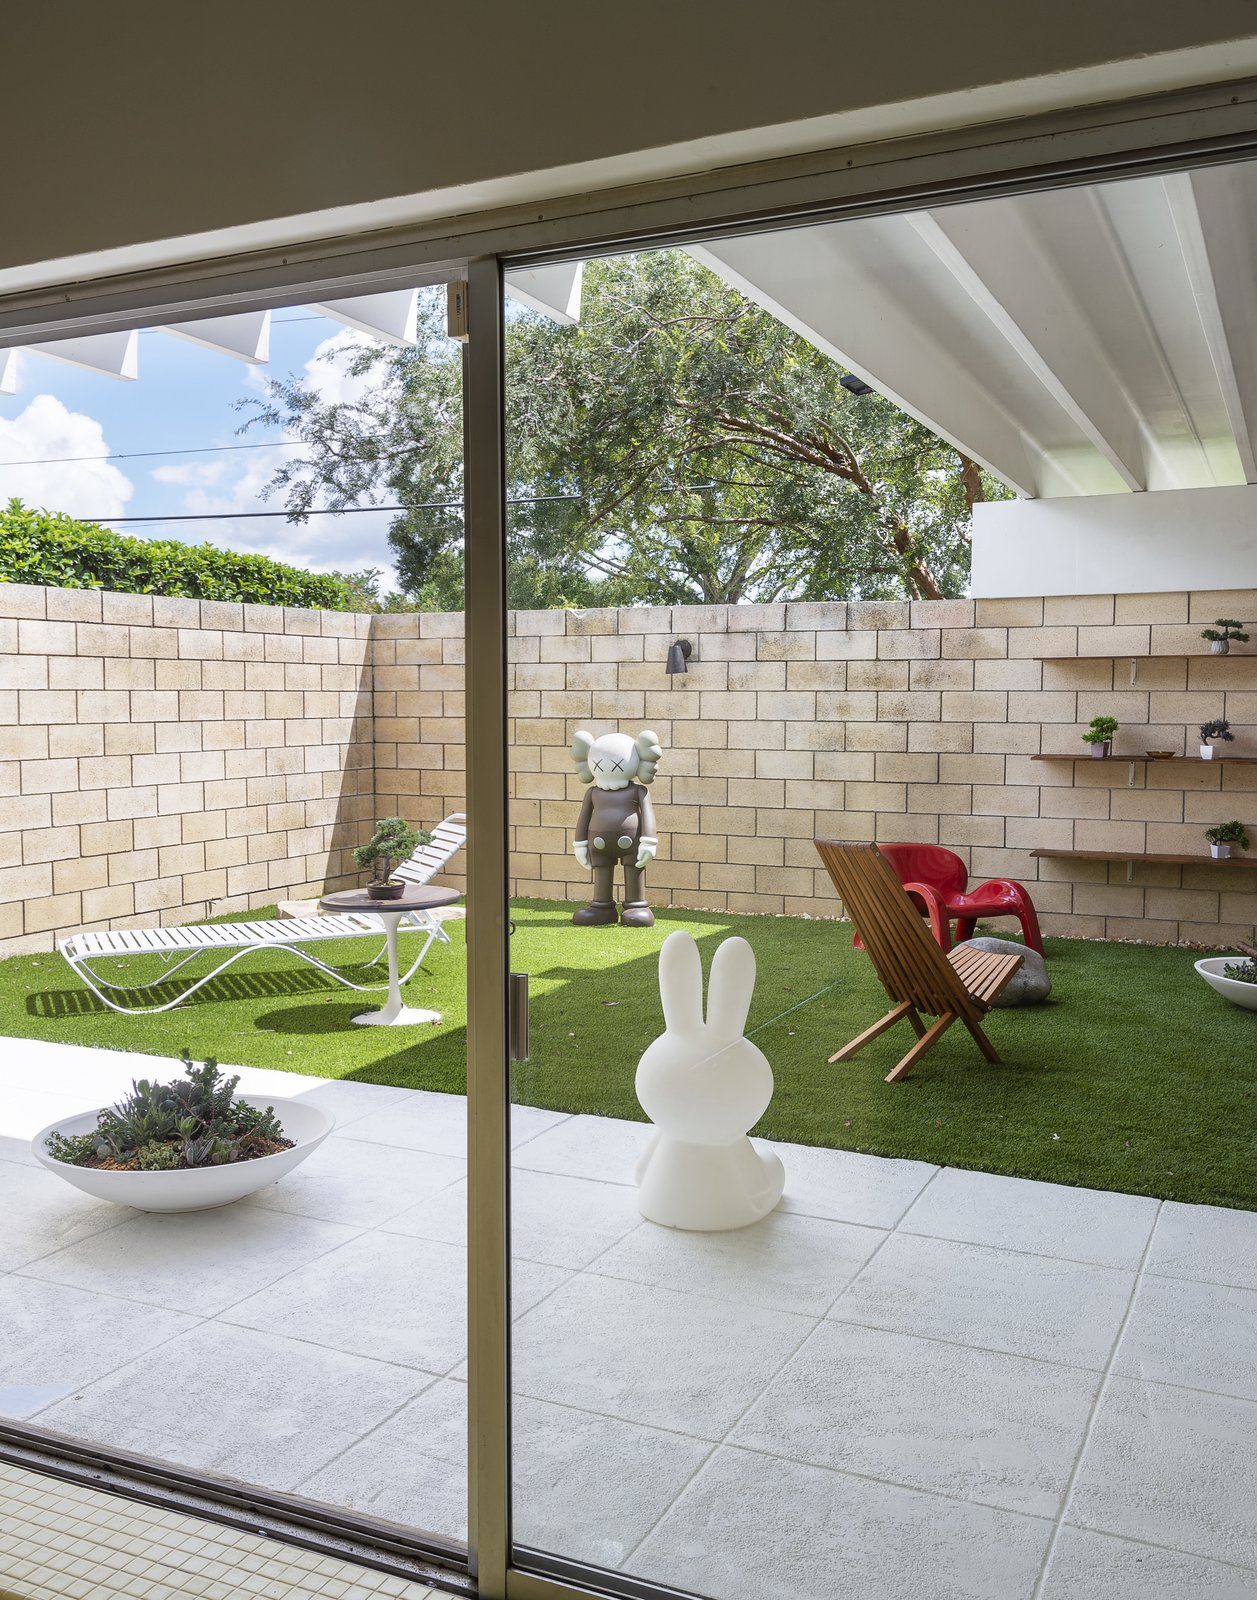 Outdoor, Small Patio, Porch, Deck, and Grass KAWS Companion Figure.  The Ellison House from Pop Art, Street Art, and Space-Age Furniture Collide at a Painter's Midcentury Ranch Home in Florida